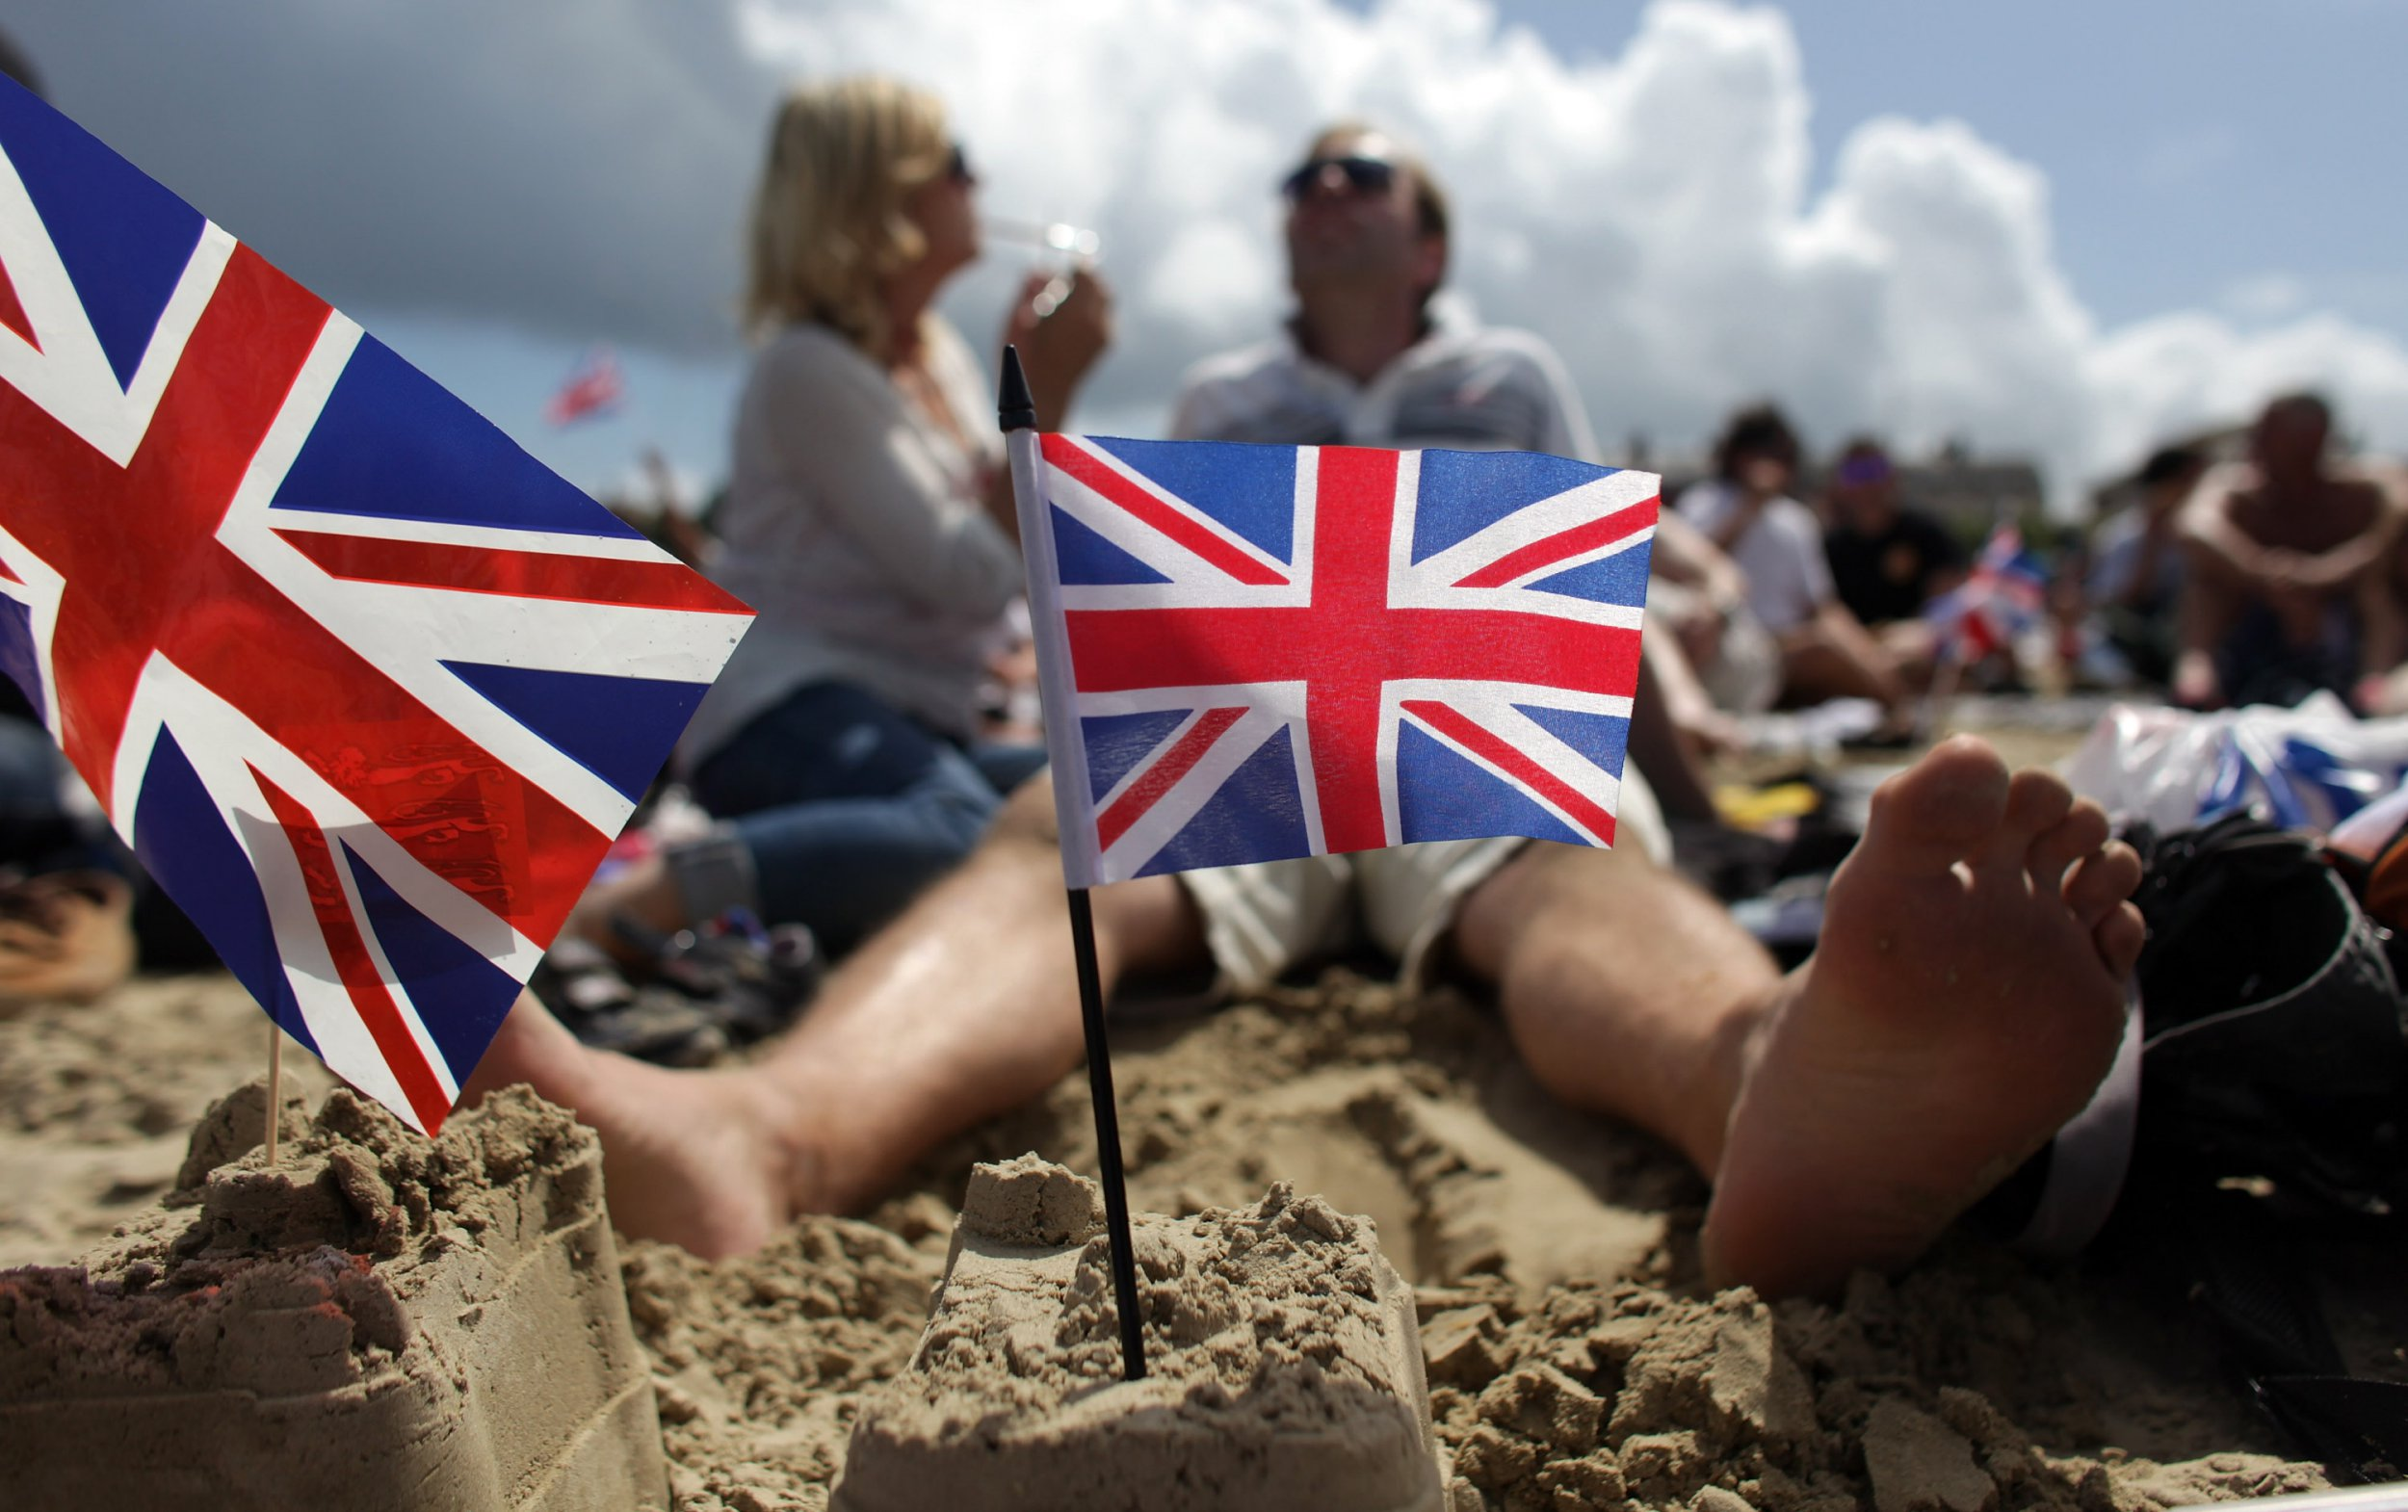 Weekend heatwave on its way with temperatures of 24°C in parts of UK